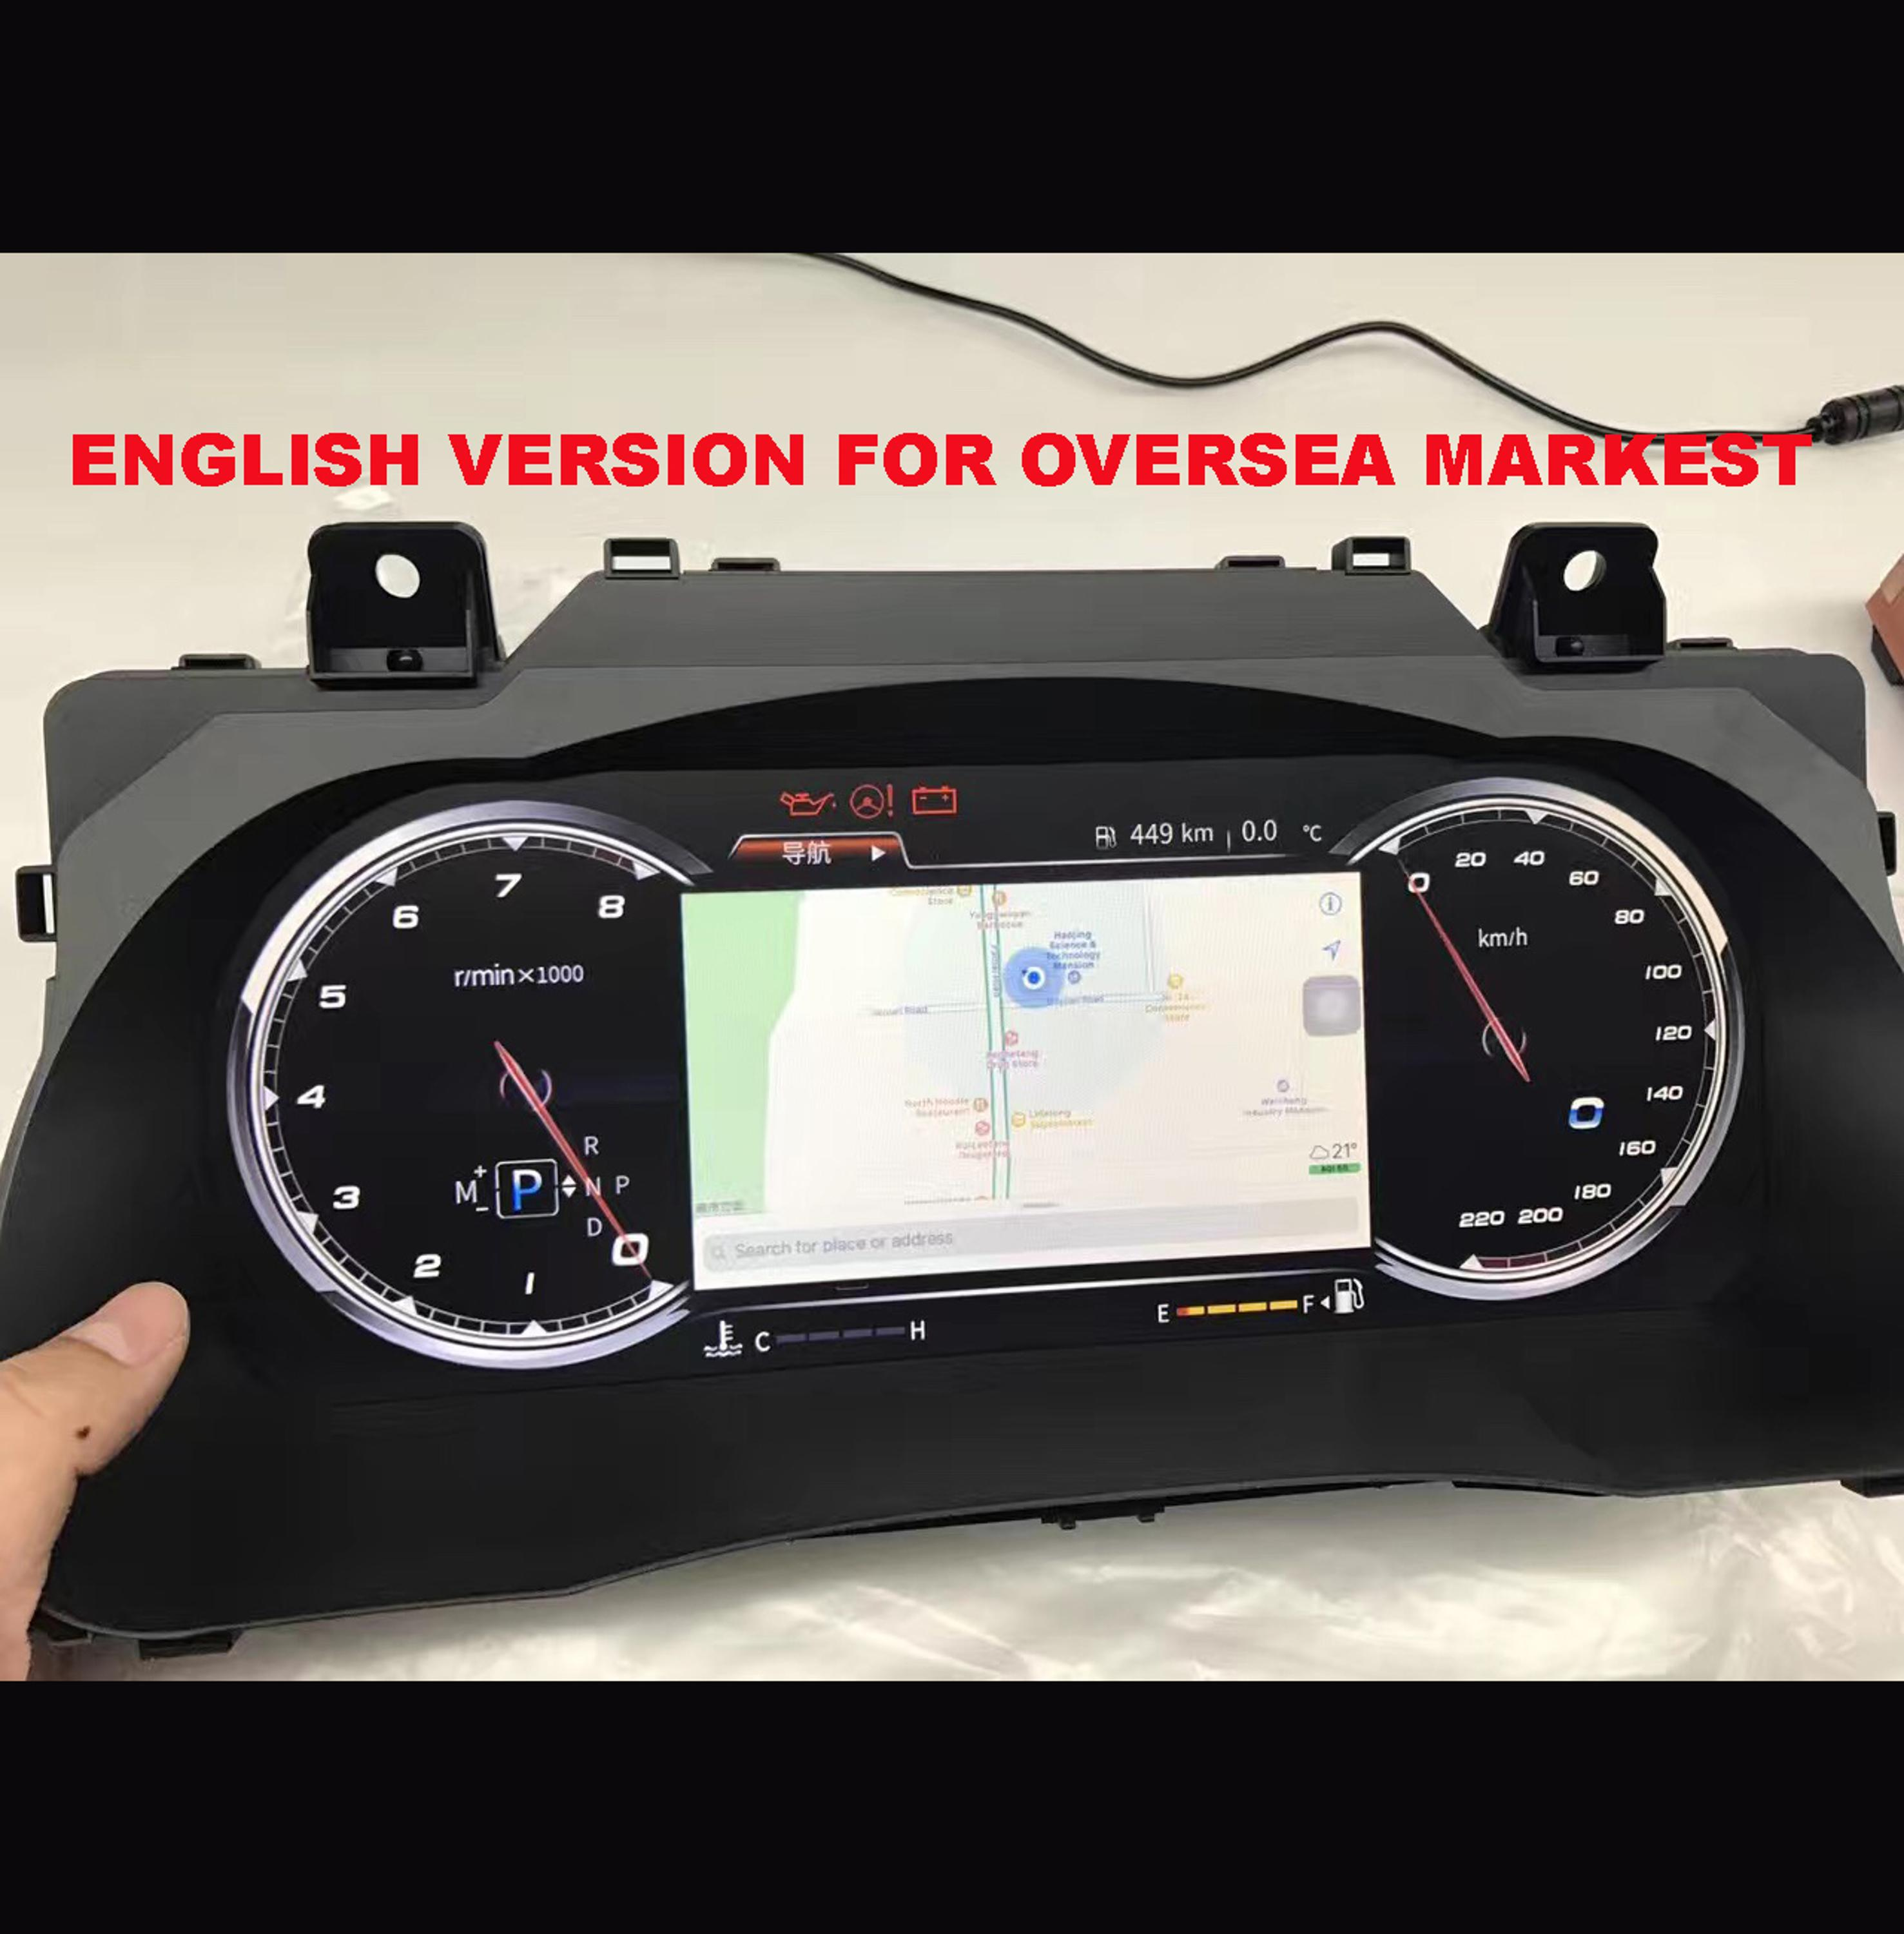 12 3 Inch Lcd Dashboard Car Speed Meter And Big Screen